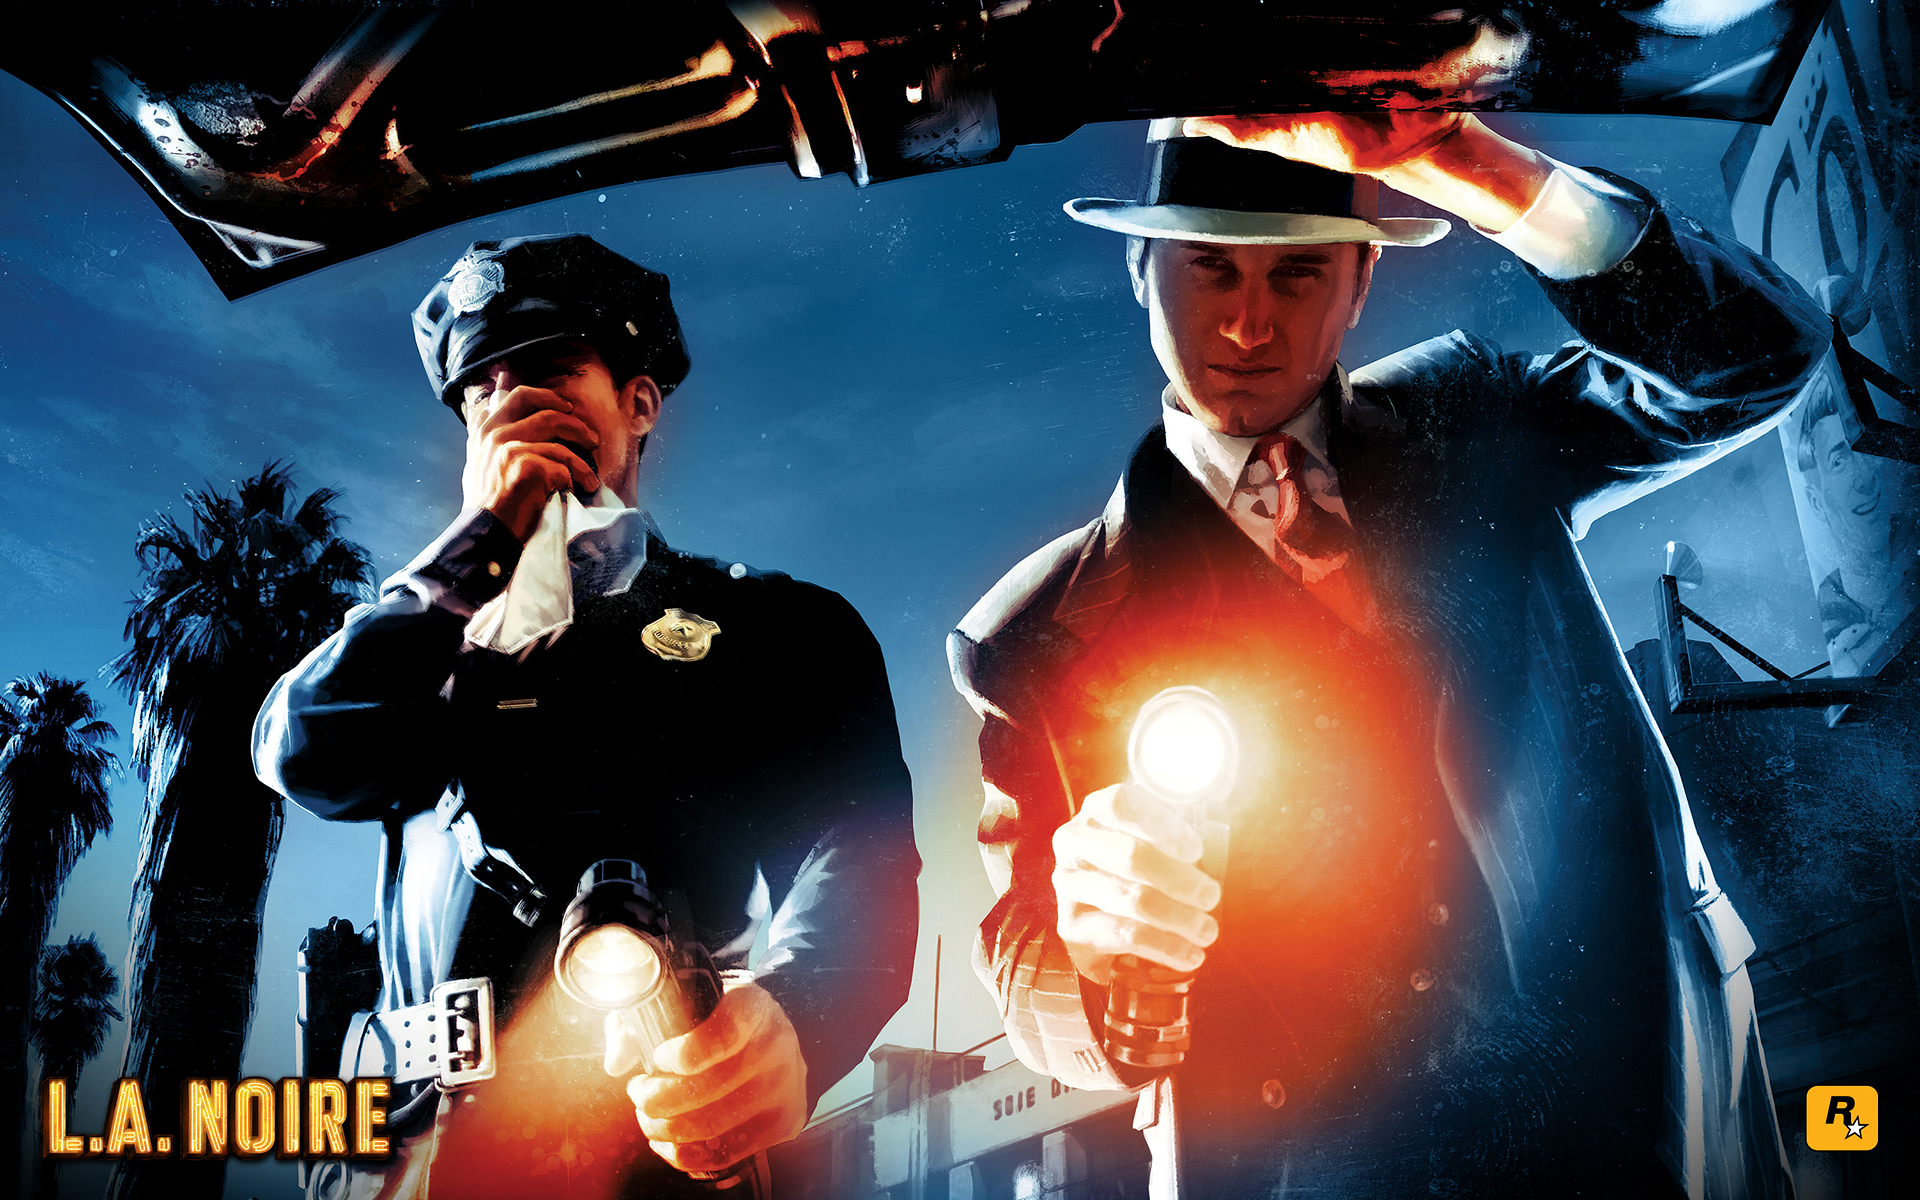 L.A. Noire Game wallpaper